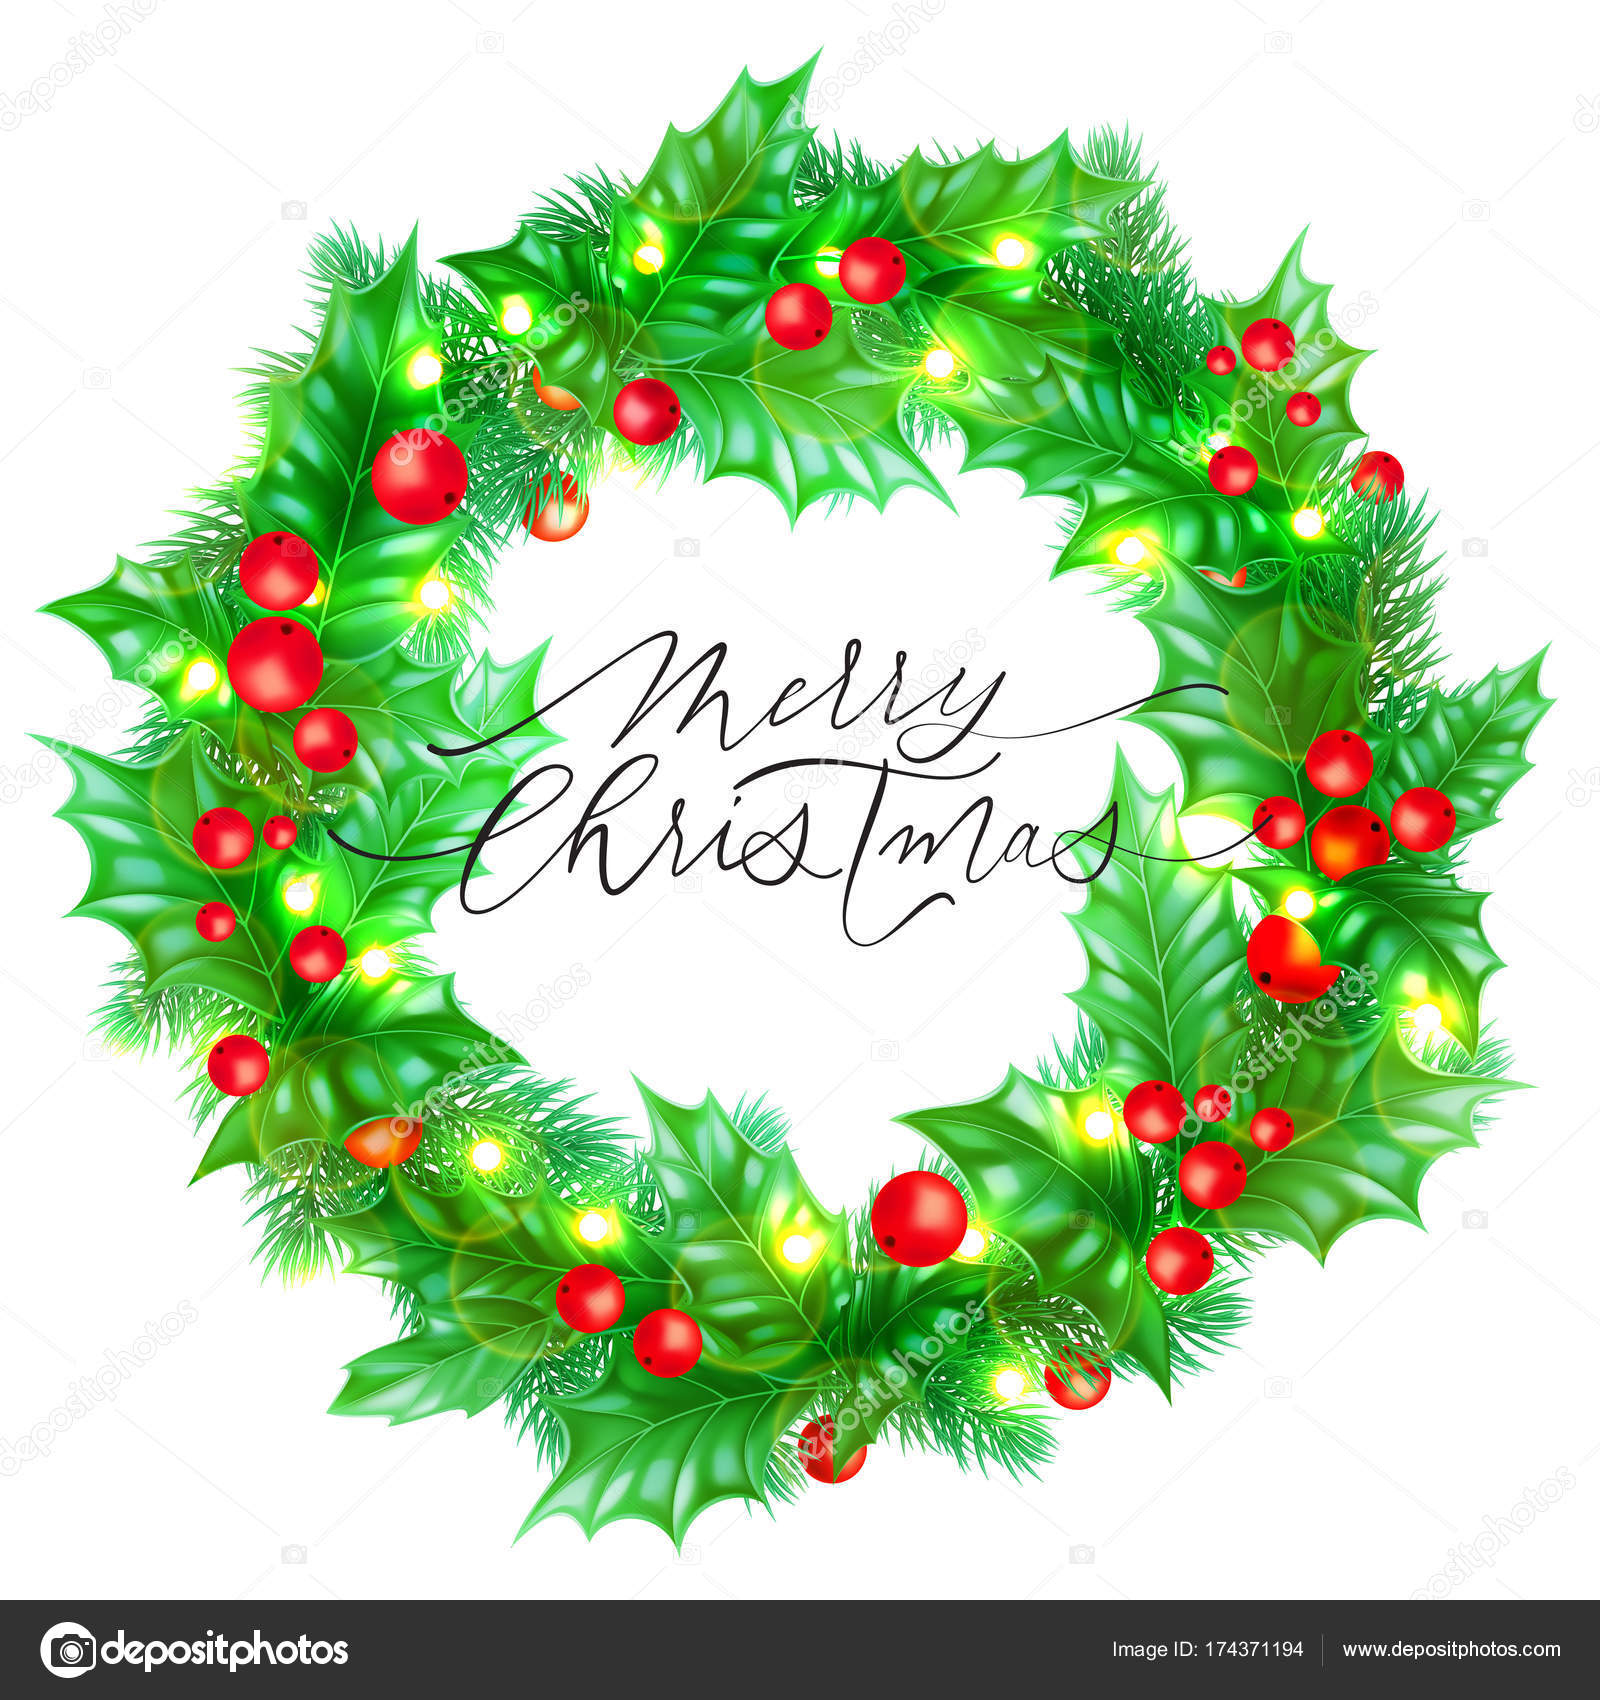 Merry Christmas Holiday Hand Drawn Calligraphy Text For Greeting